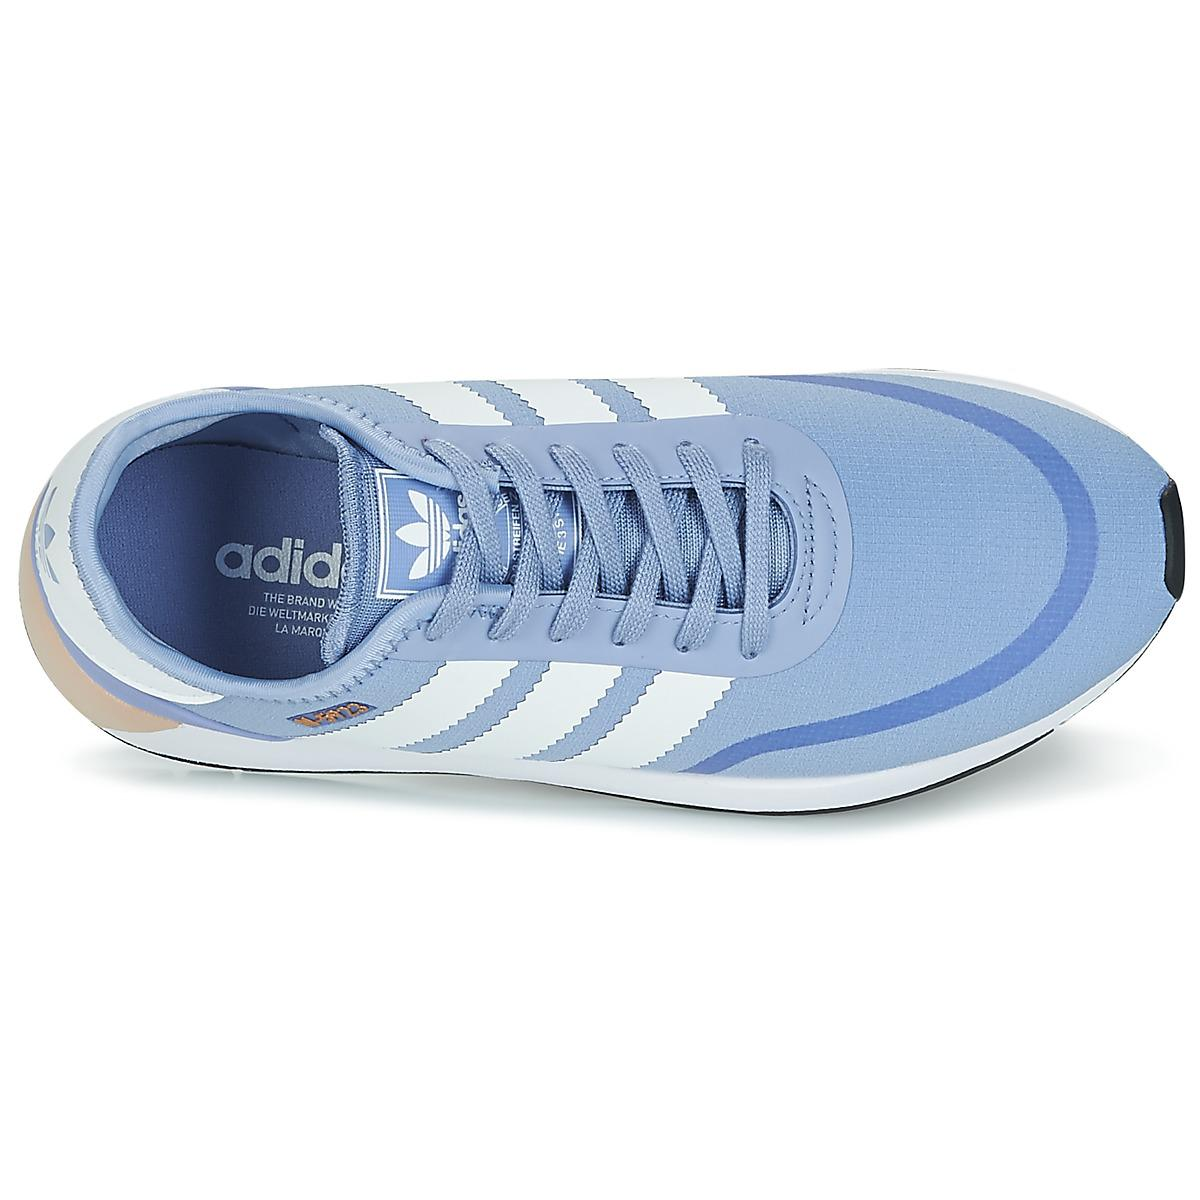 adidas Synthetic Iniki Runner Cls W Women's Shoes (trainers) In Blue